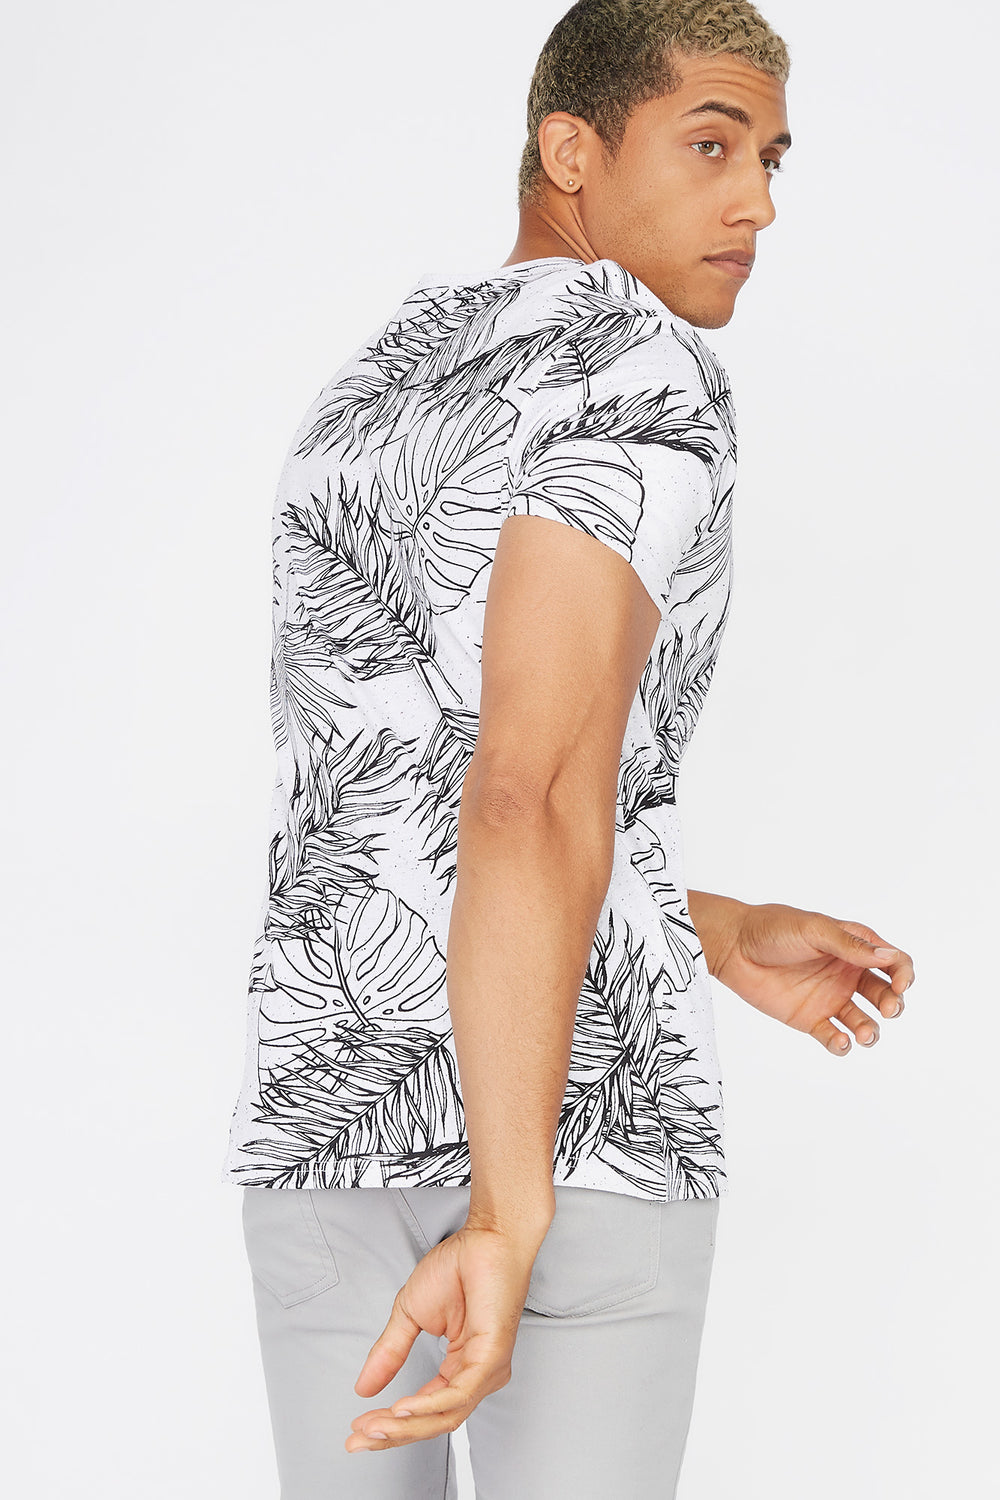 Speckled Palm Leaf Printed T-Shirt White